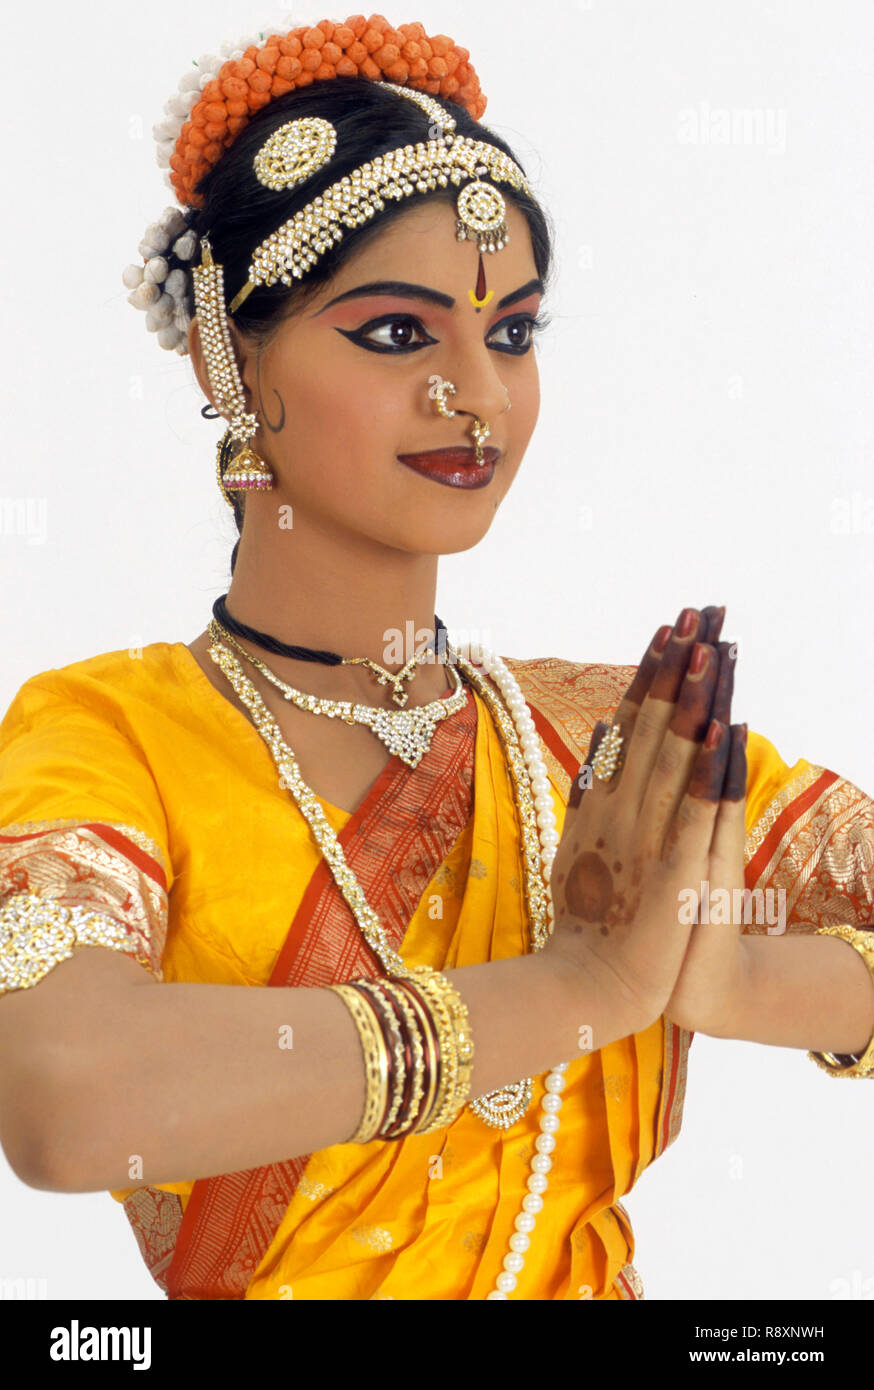 3ee1b6210c Kuchipudi dance, woman performing classical dance of india, emotion  welcome, india MR.